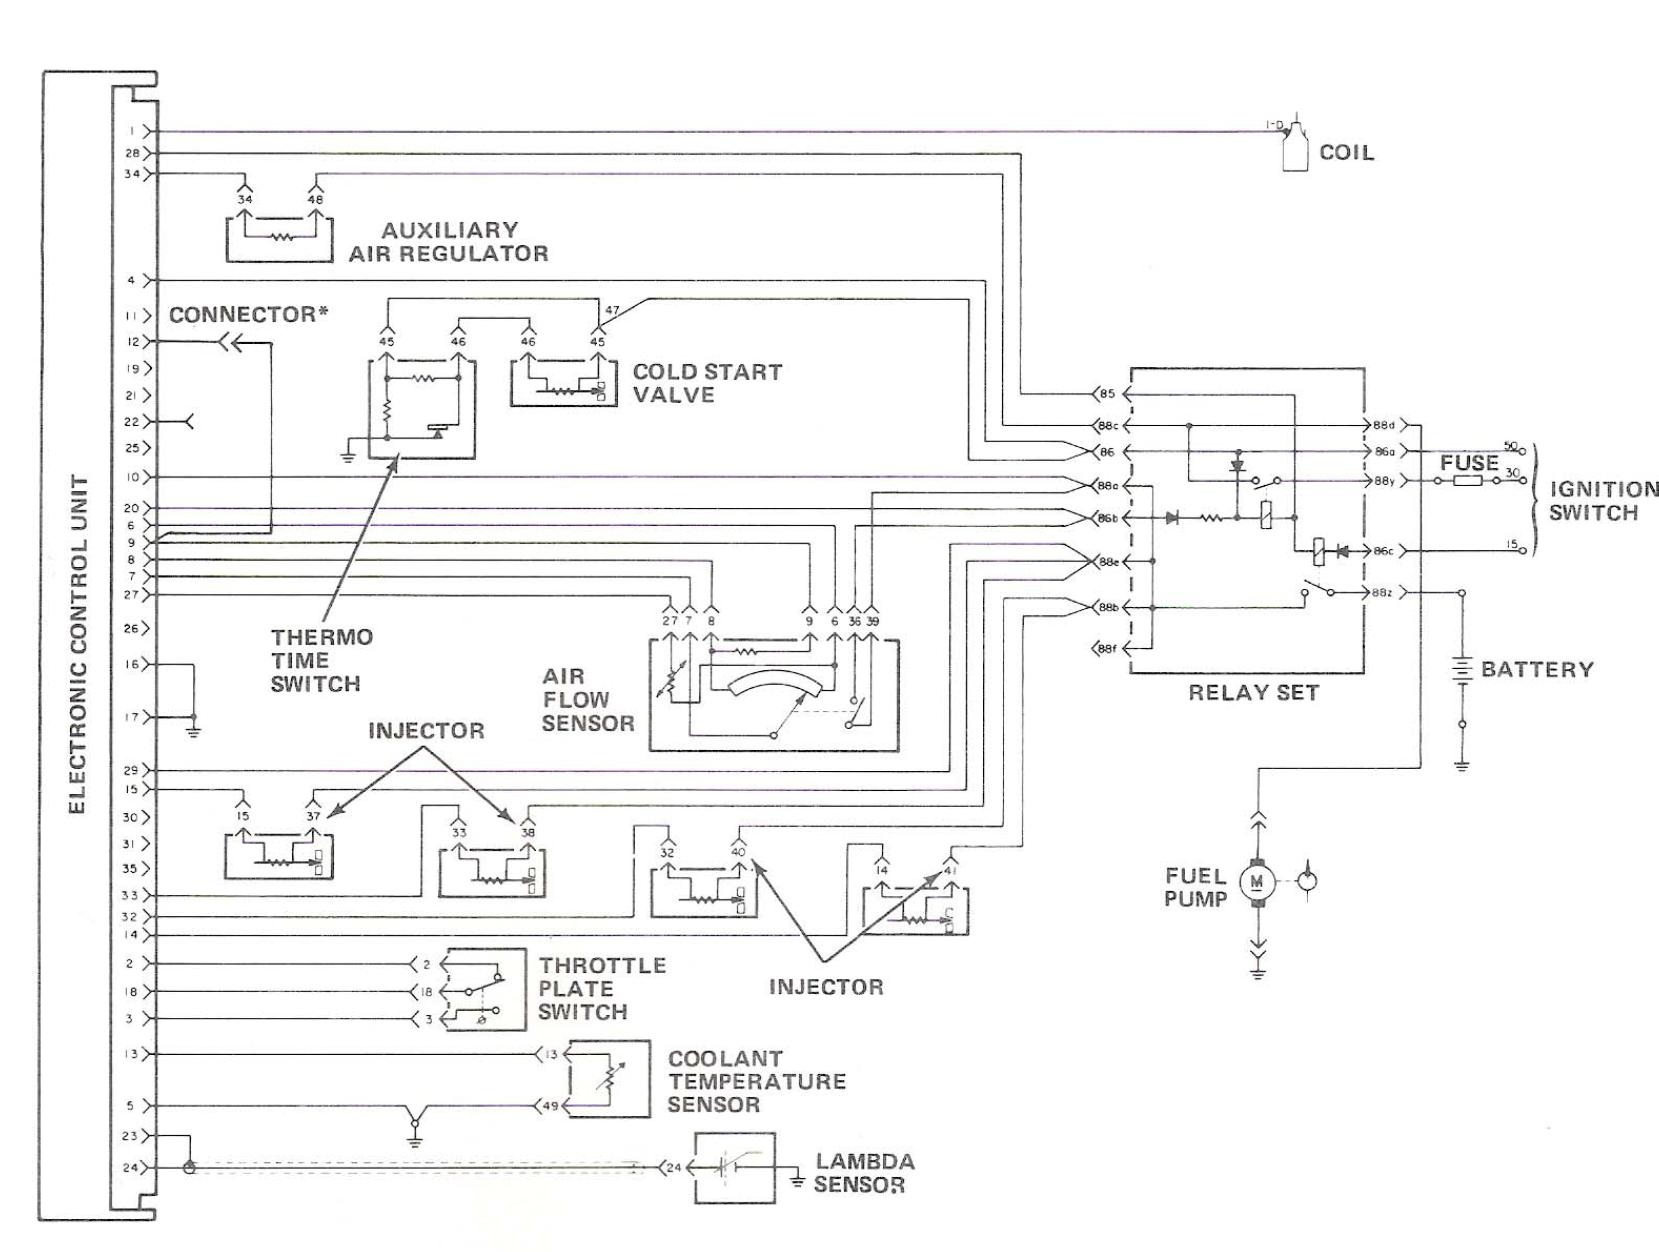 2wire Alternator Wiring Diagram Dodge Download Diagrams Gm Si 10si Free Engine Image For User Connections